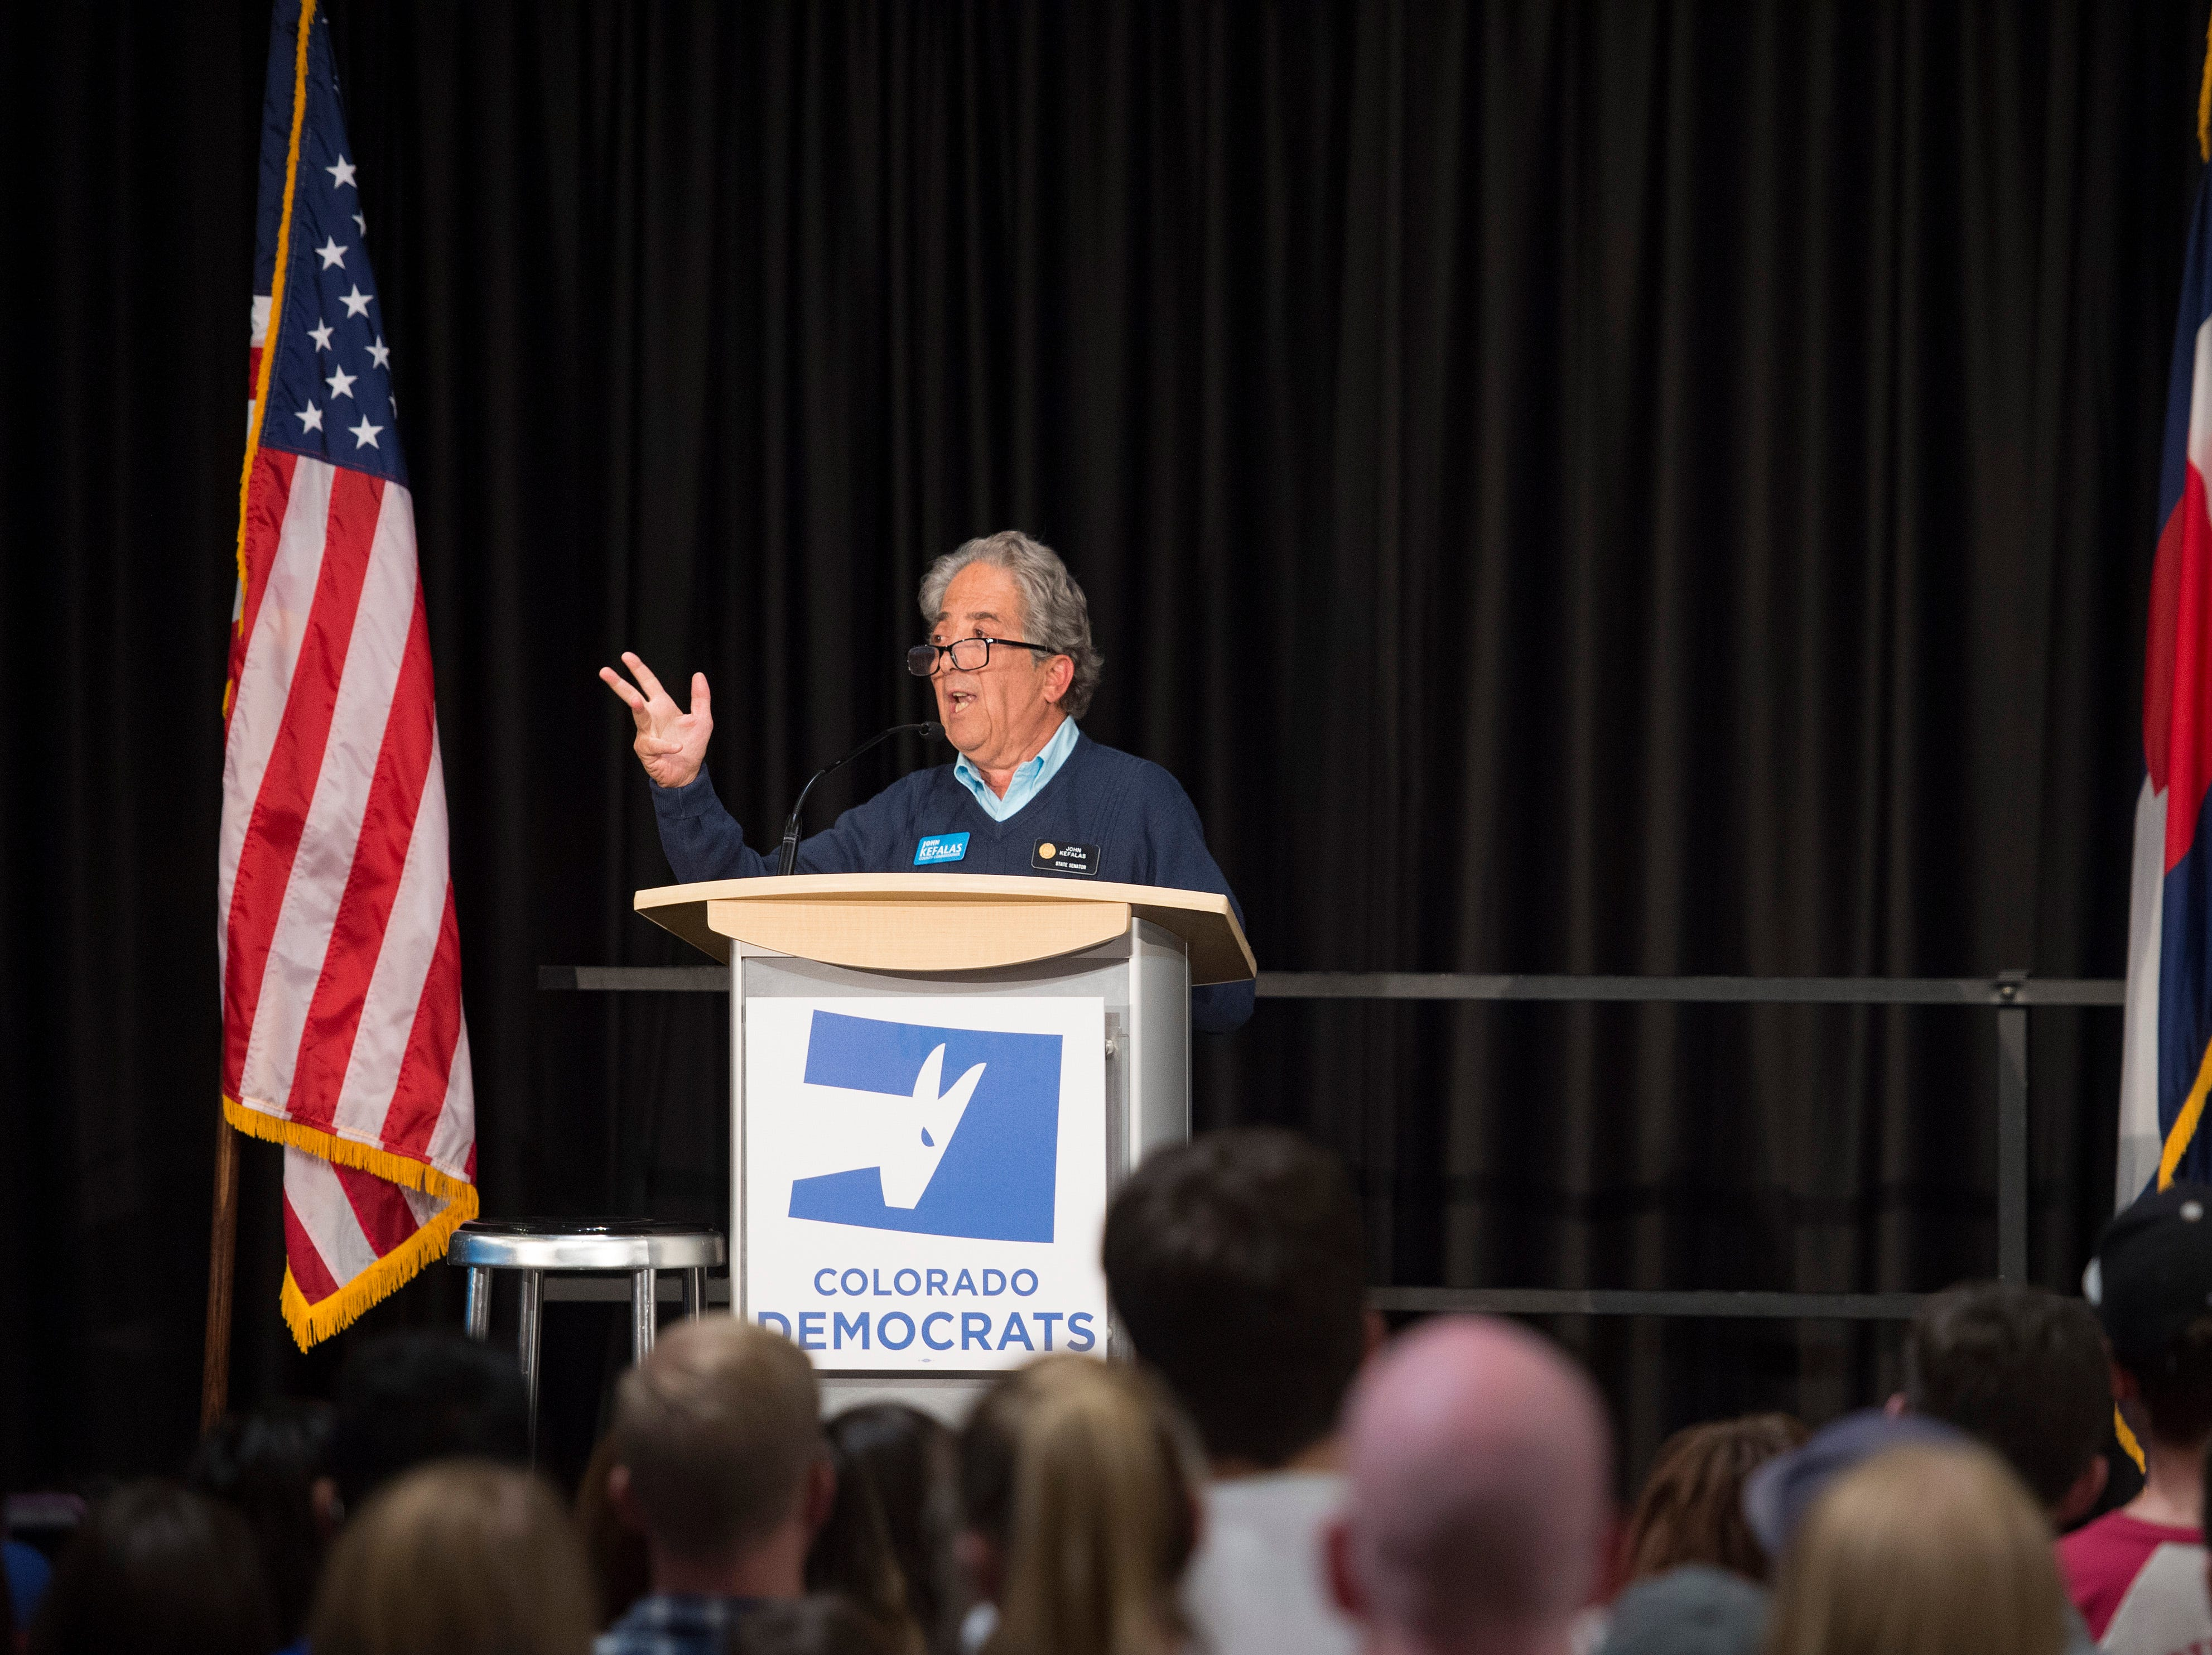 State Sen. and candidate for Larimer County Commissioner John Kefalas speaks to a crowd of around 1,800 during a rally for Colorado Democrats at the Lory Student Center at CSU on Wednesday, October 24, 2018.